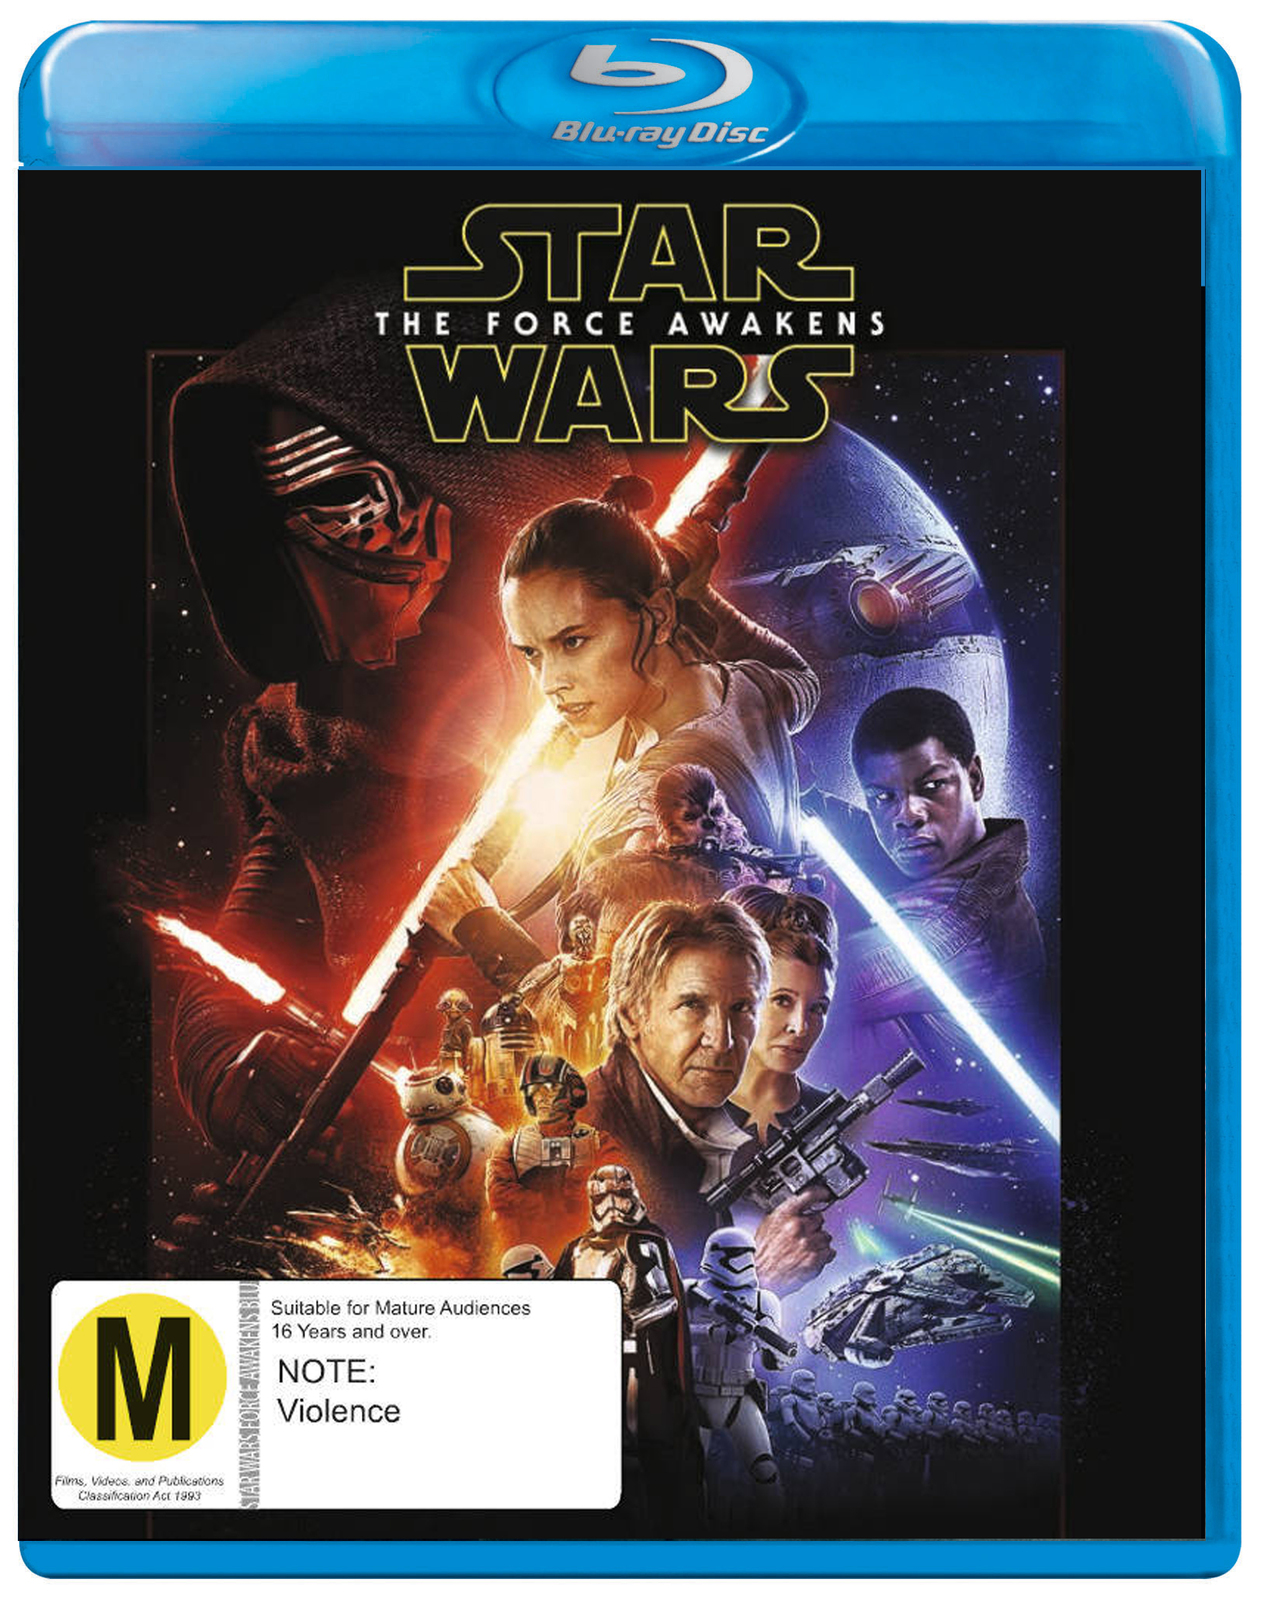 Star Wars: Episode VII - The Force Awakens on Blu-ray image